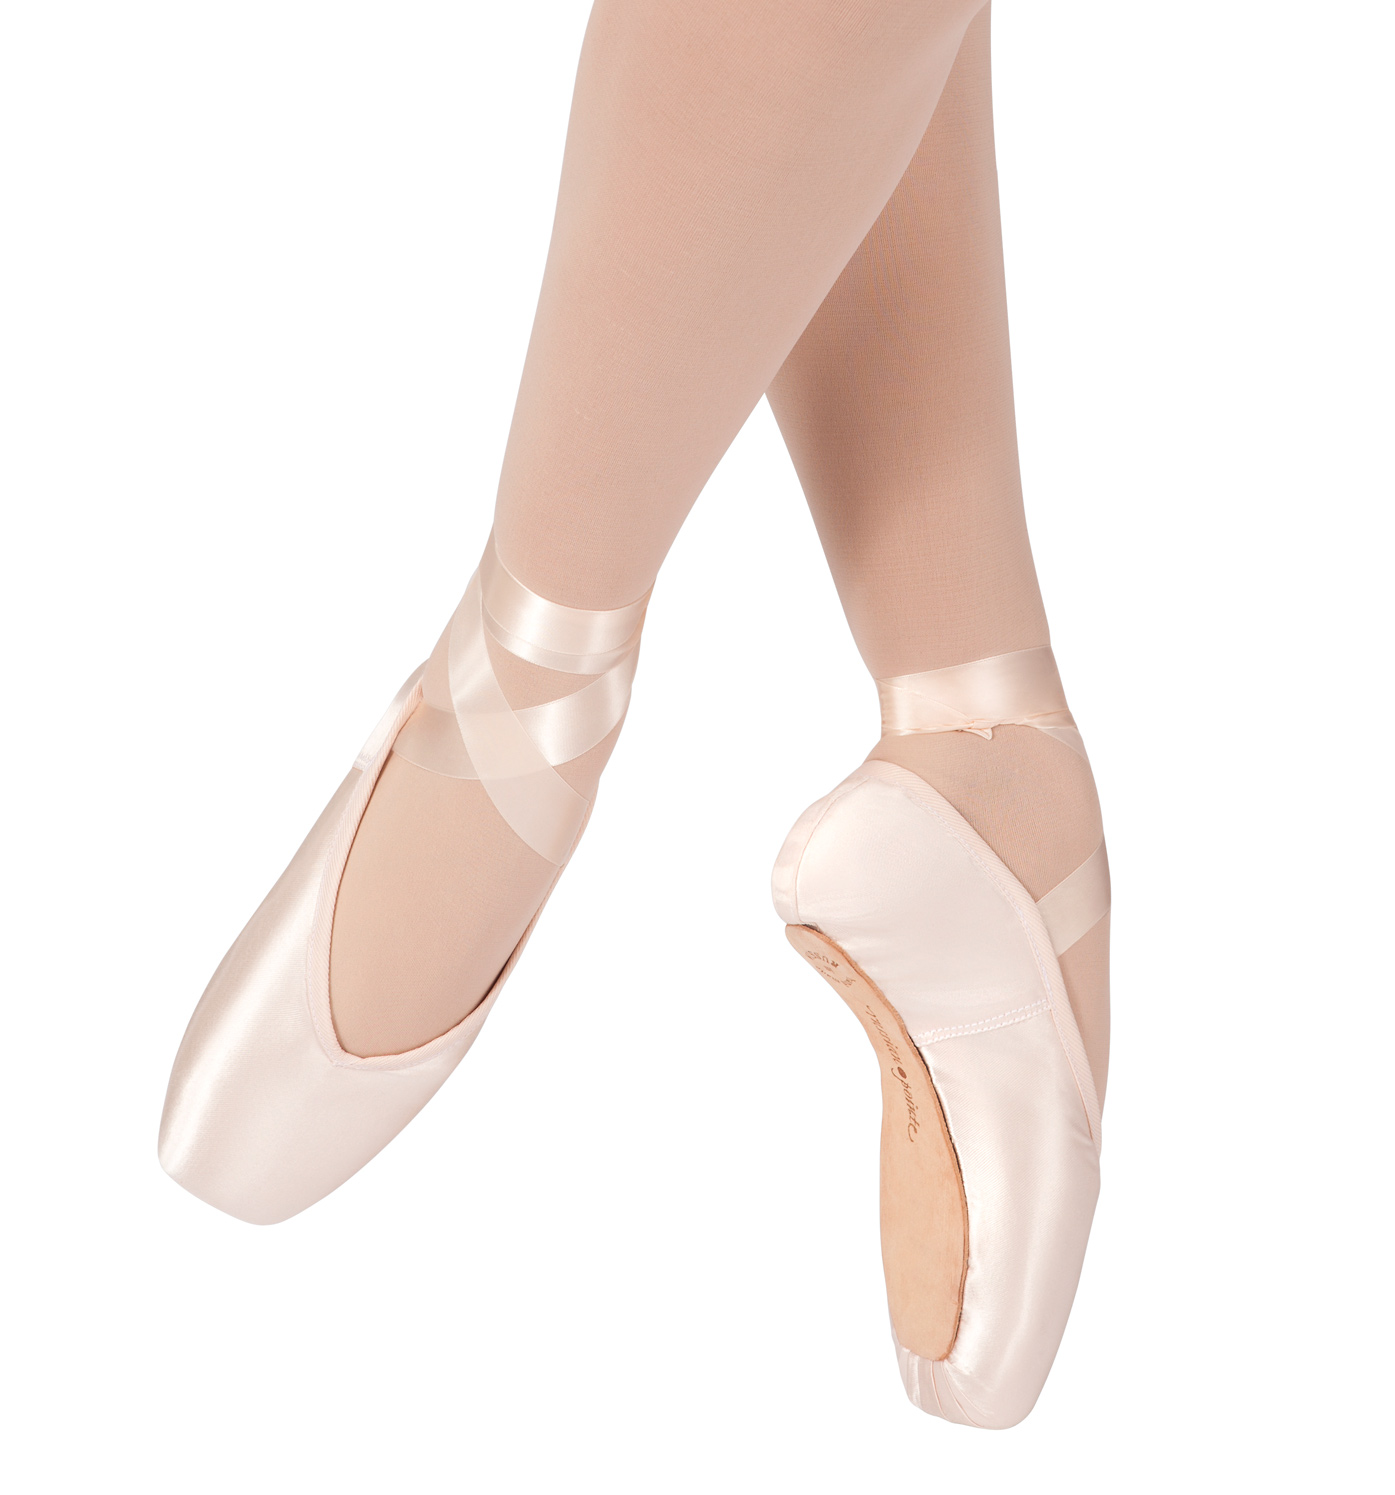 Pictures Of Ballet Toe Shoes